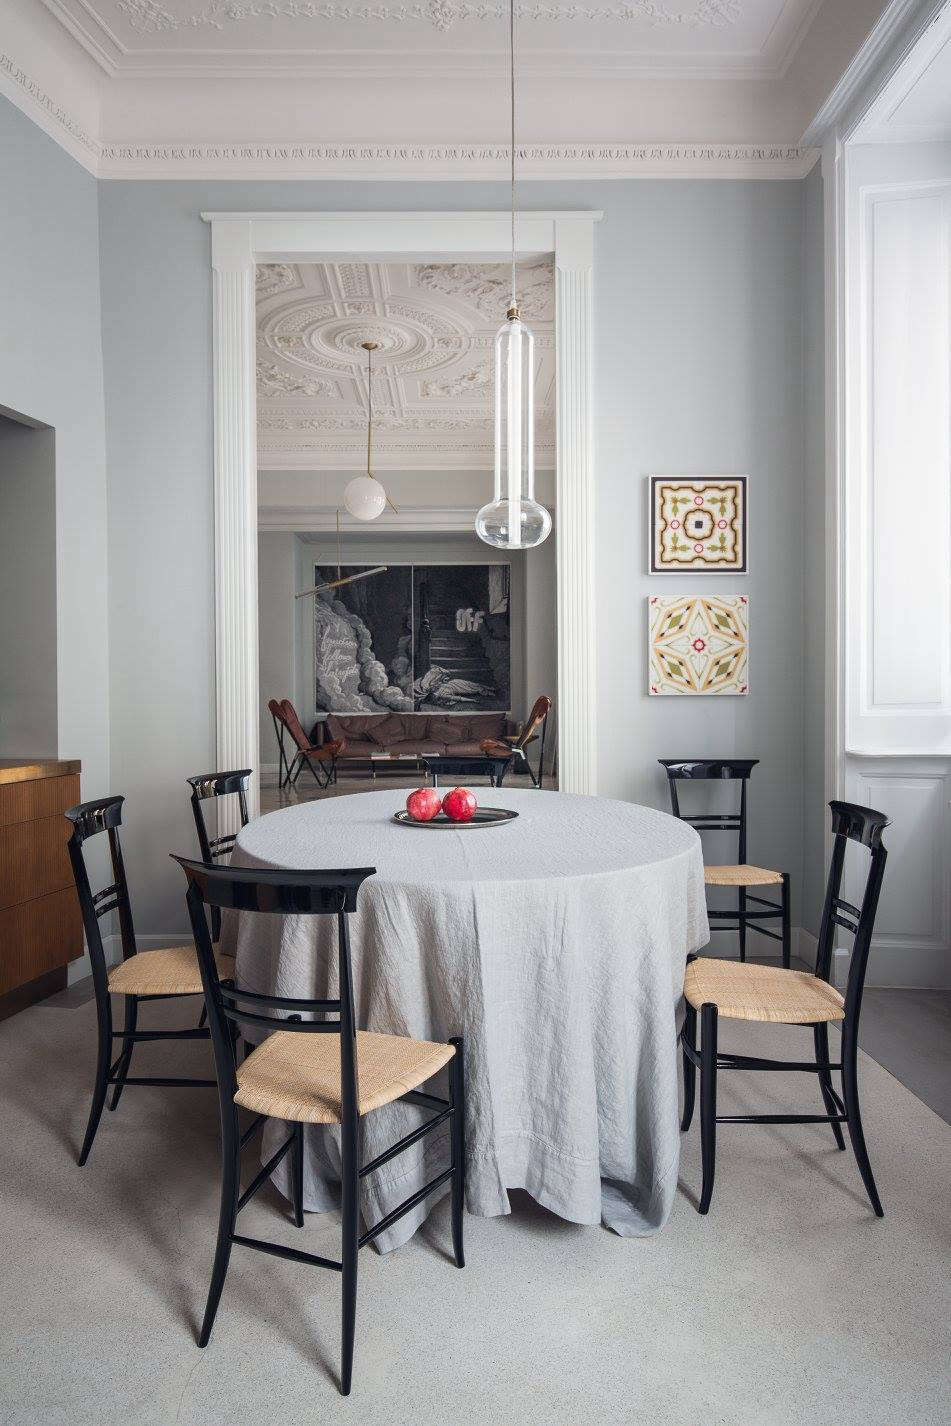 Italian Design Through a Modern Lens, via Eligo in Milan - Remodelista